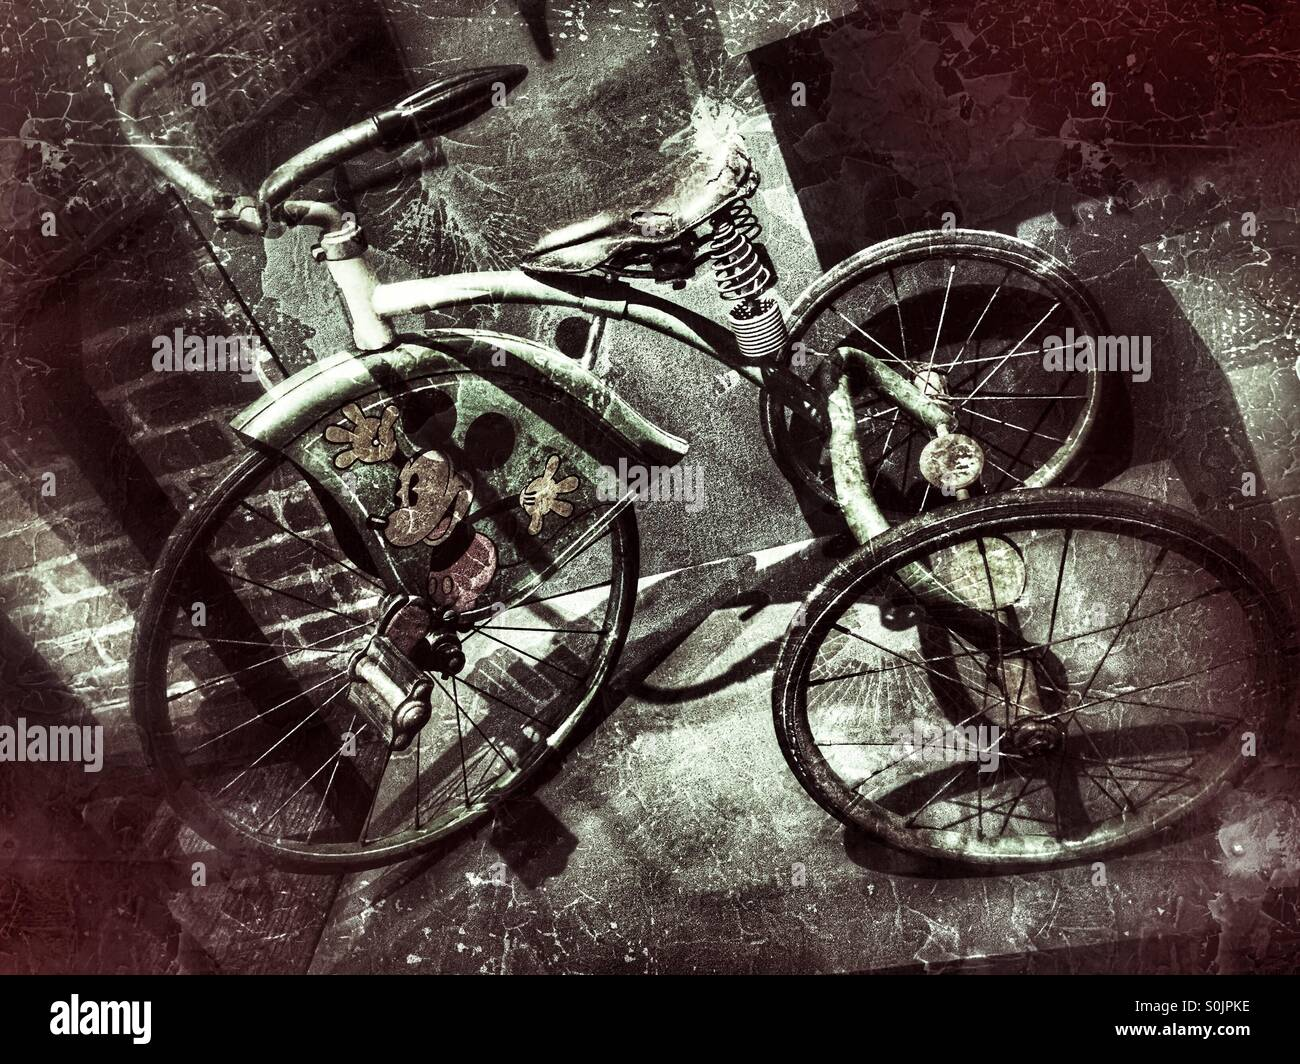 Vintage Trike High Resolution Stock Photography And Images Alamy